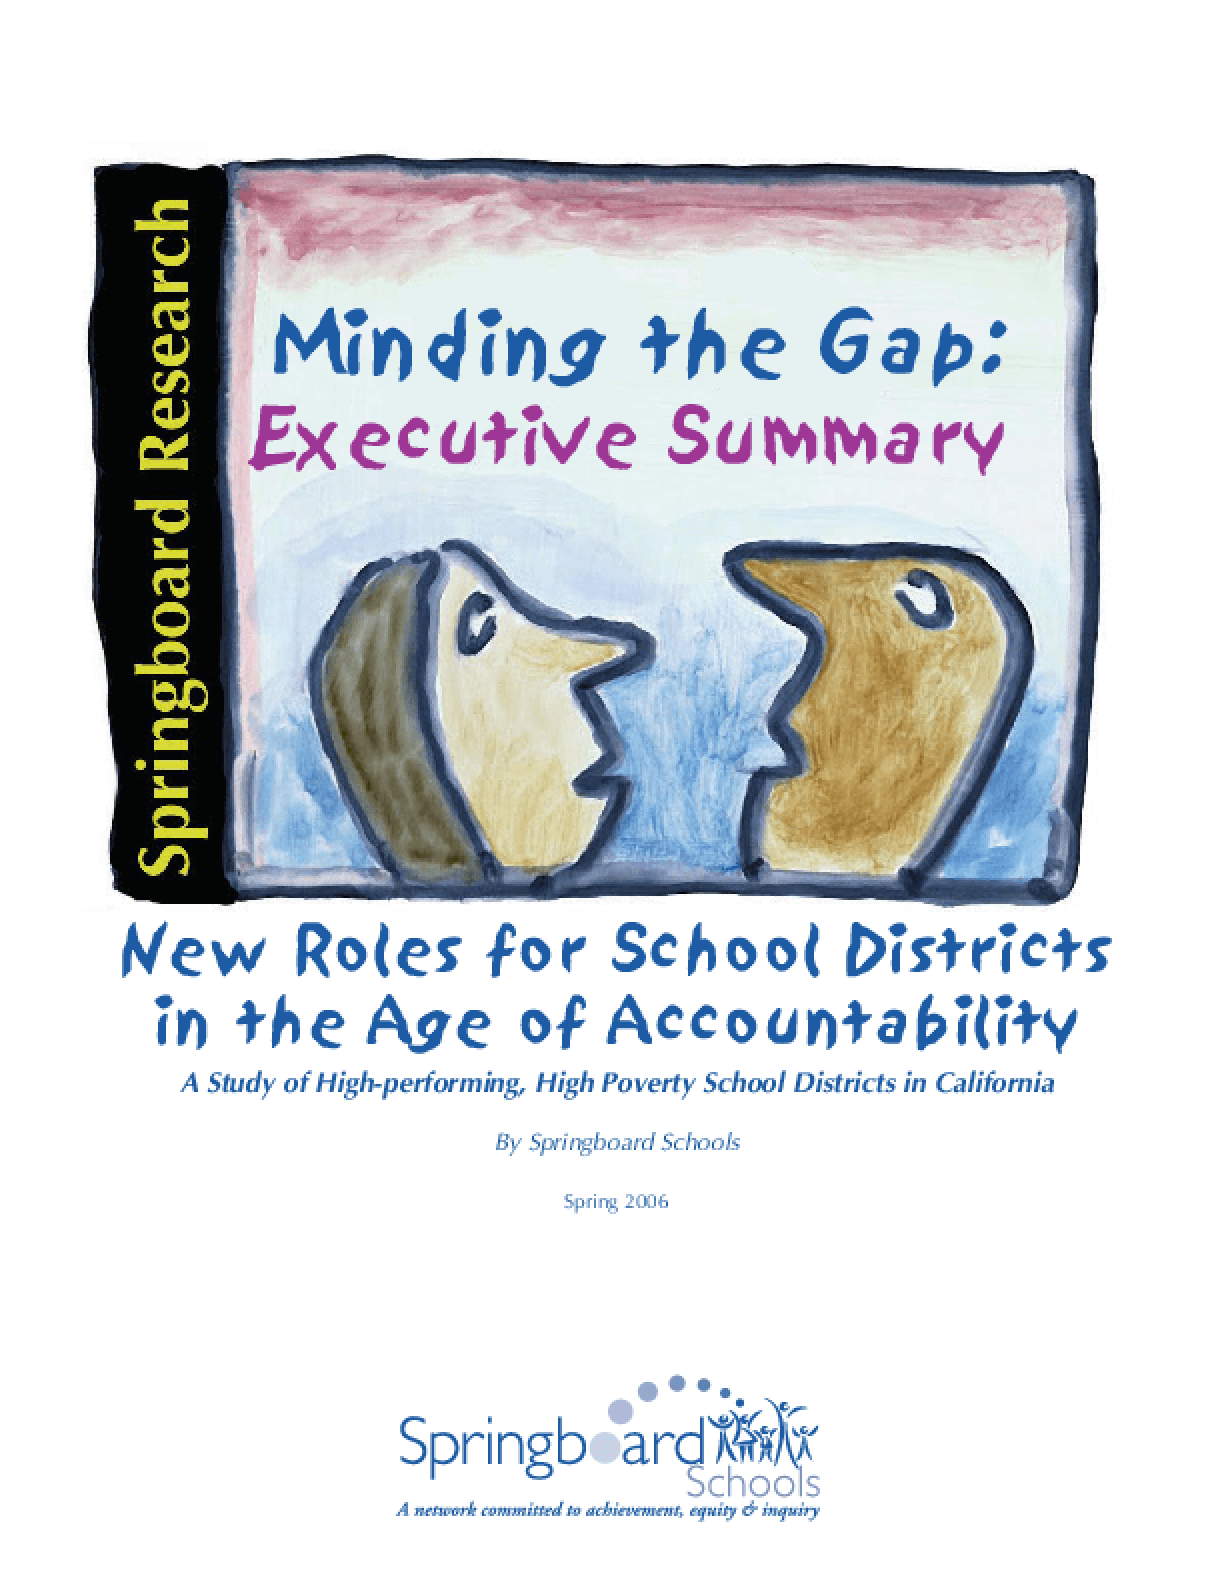 Minding the Gap: New Roles for School Districts in the Era of Accountability